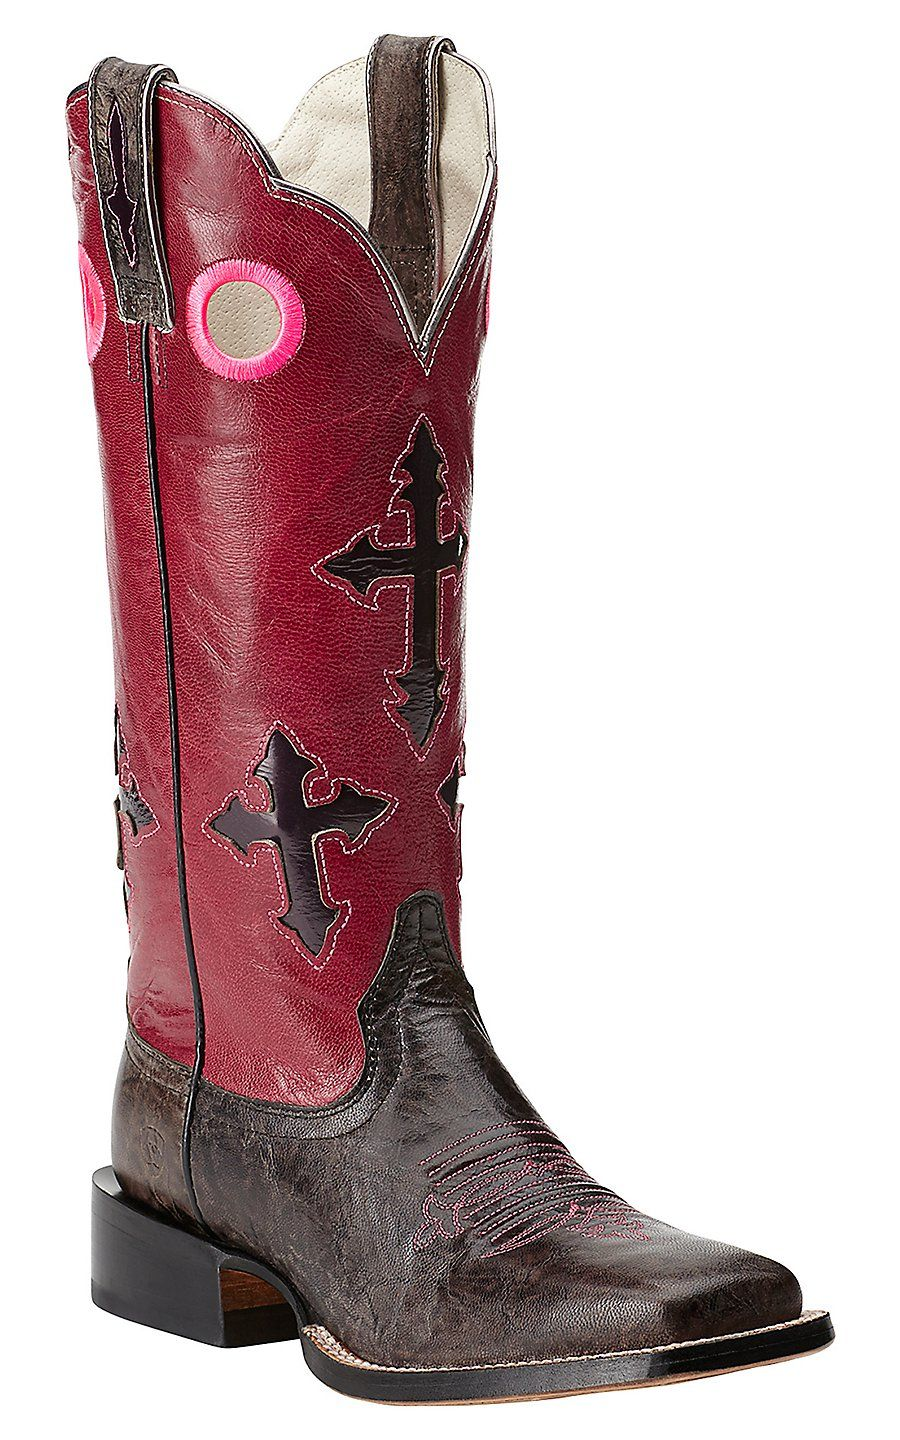 111aed569aca Ariat Ranchero Women s Textured Charcoal with Bling Pink Cross Inlay Top  Double Welt Square Toe Western Boots